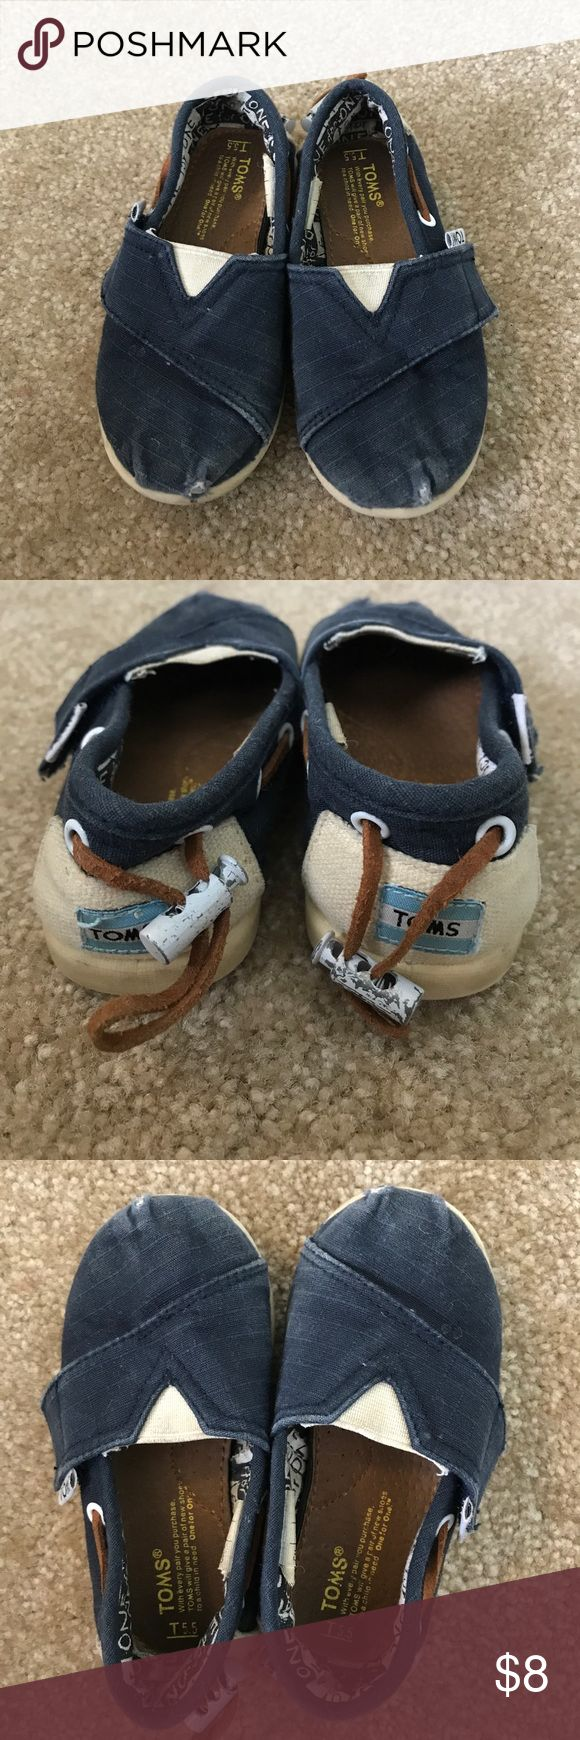 Kids TOMS Play condition! But still some good use left in them Toms Shoes Dress Shoes